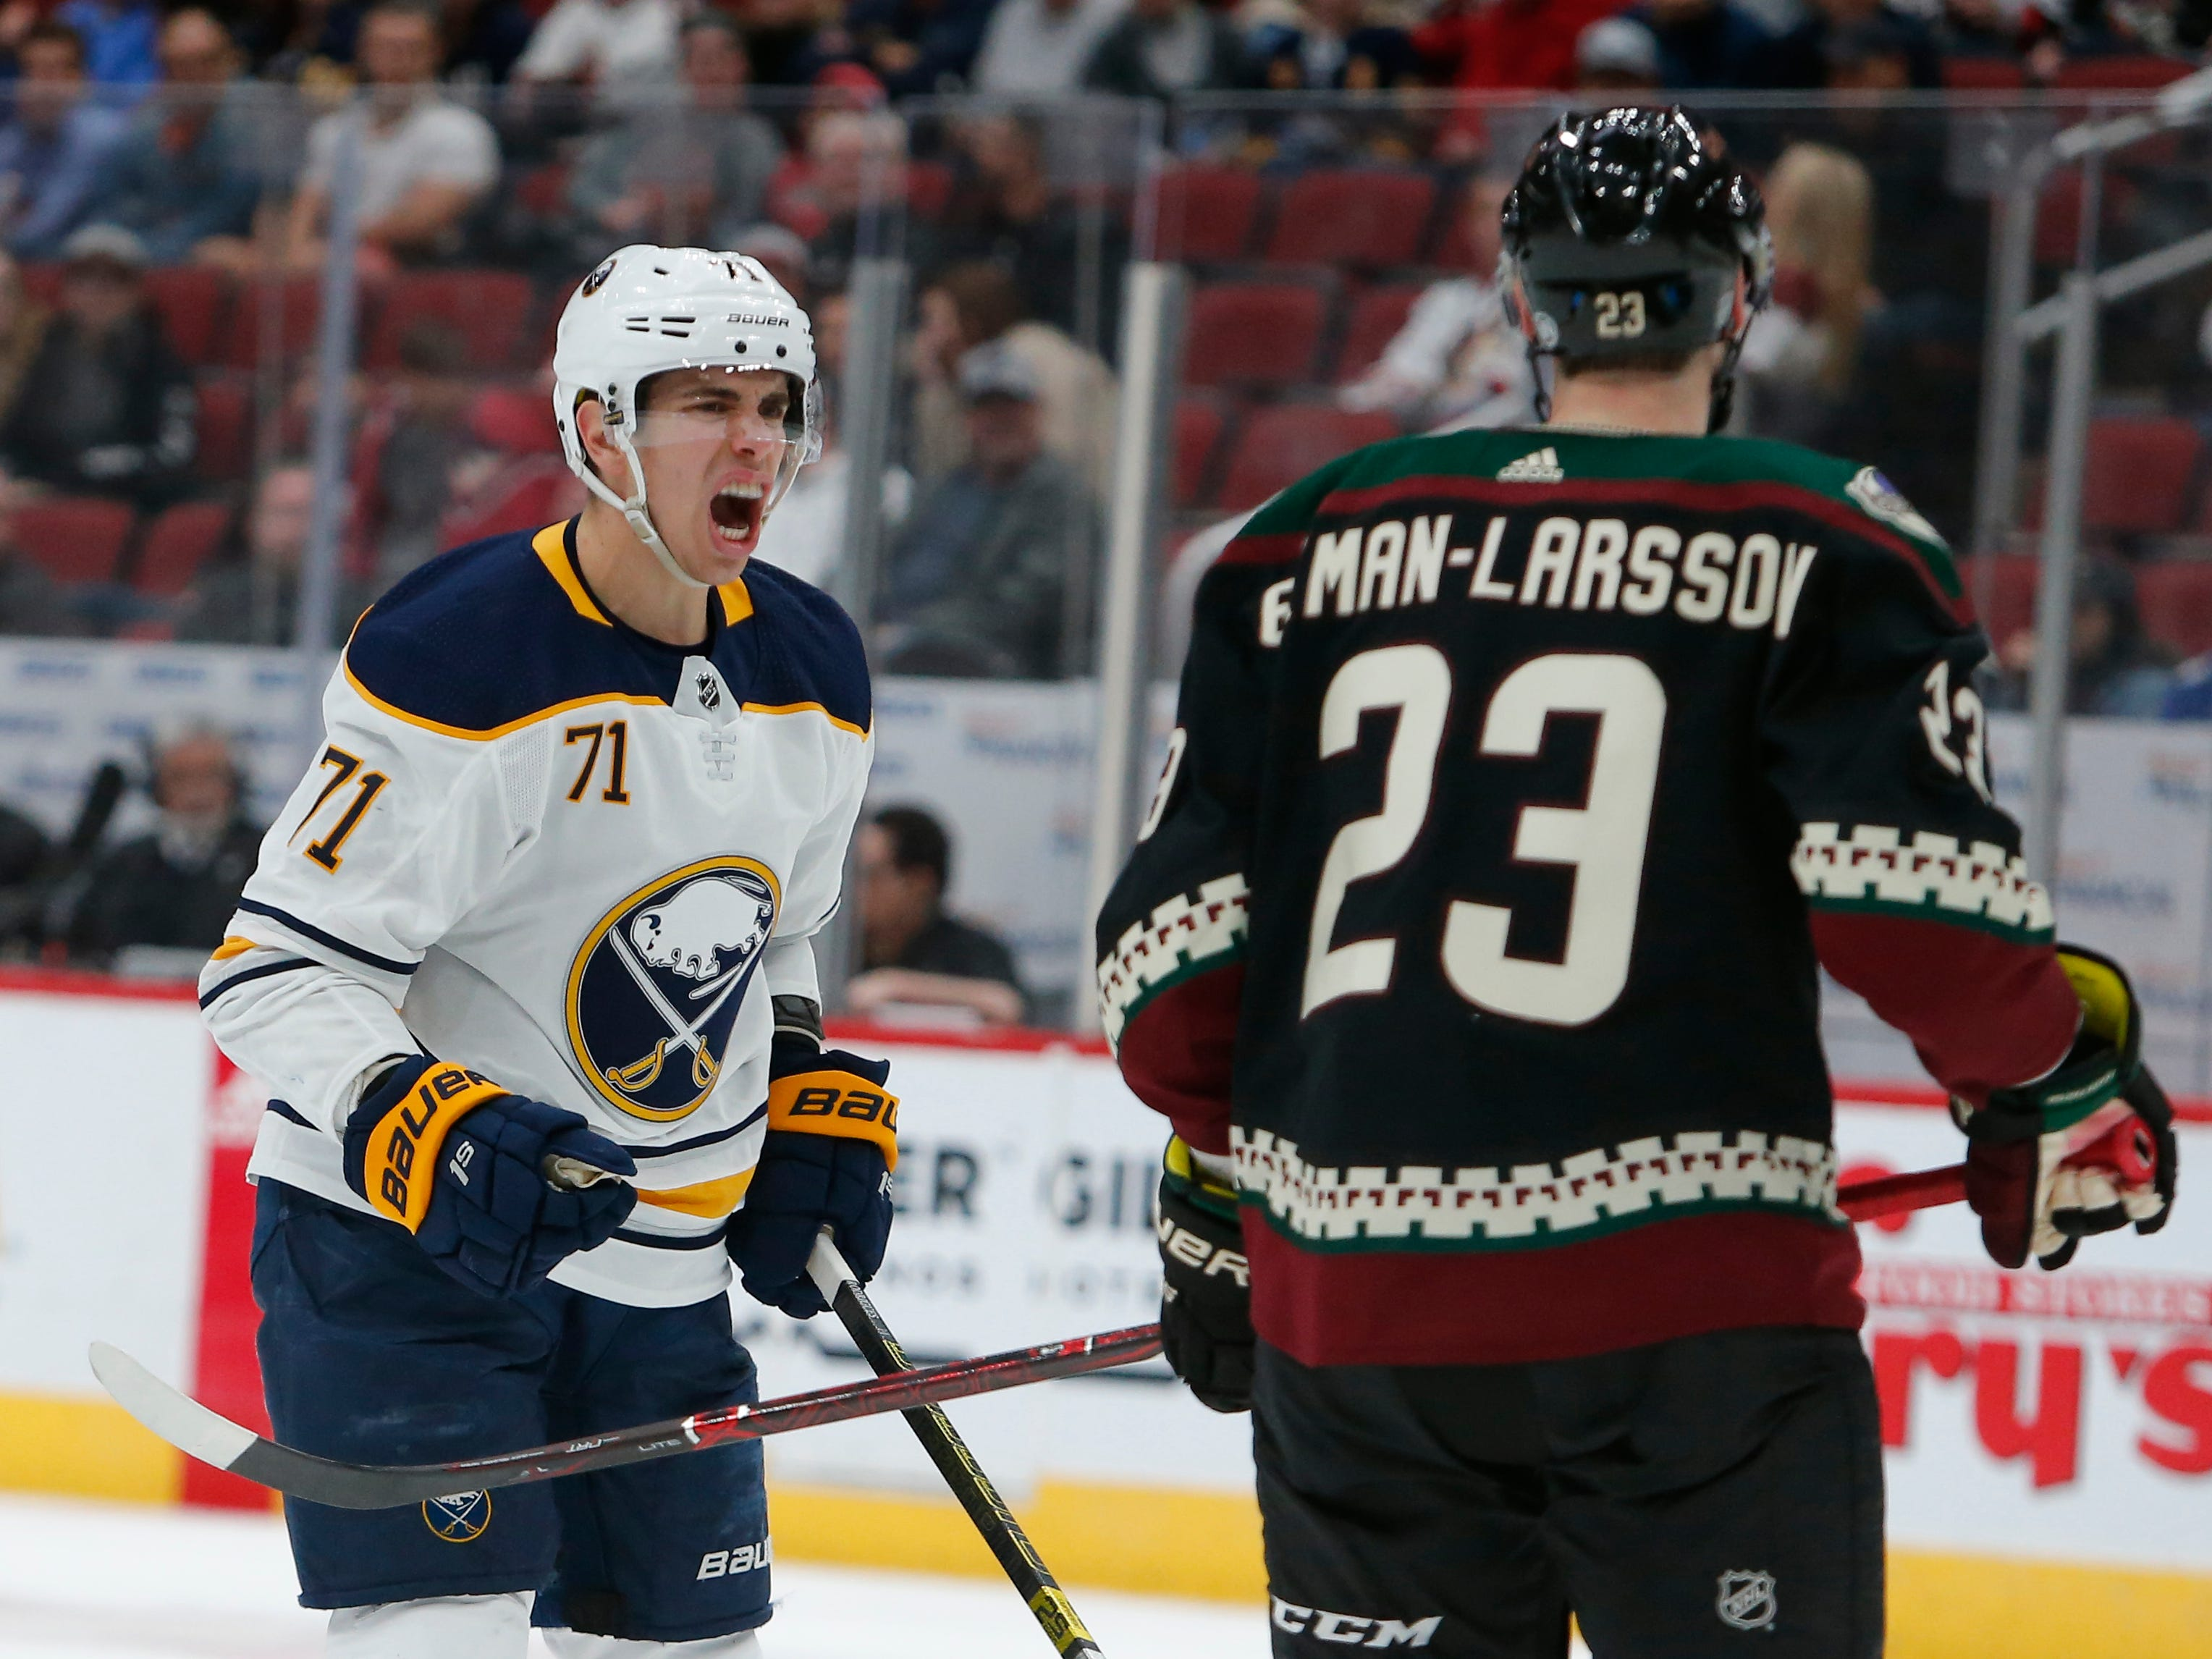 Buffalo Sabres left wing Evan Rodrigues (71) yells at Arizona Coyotes defenseman Oliver Ekman-Larsson after getting slashed during the third period during an NHL hockey game Saturday, Oct. 13, 2018, in Glendale, Ariz.